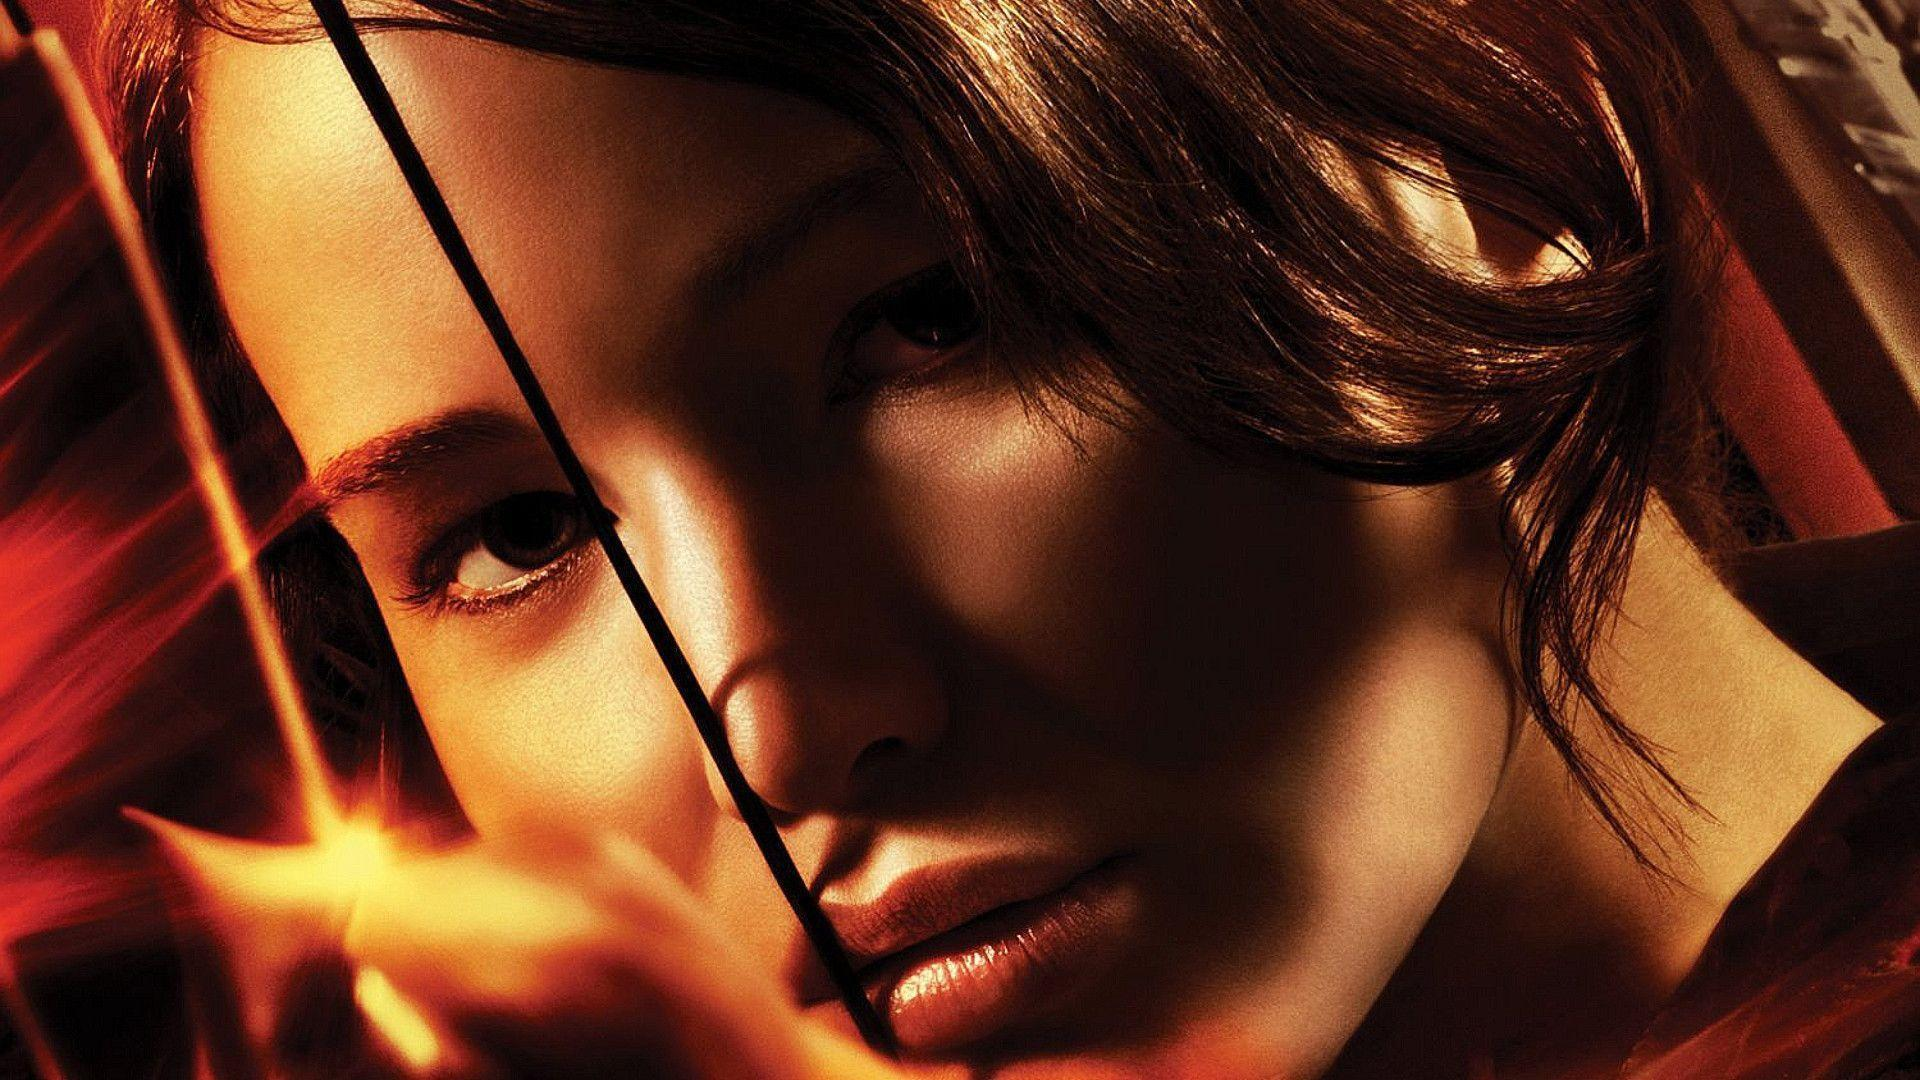 Jennifer Lawrence in Hunger Games Wallpapers | HD Wallpapers